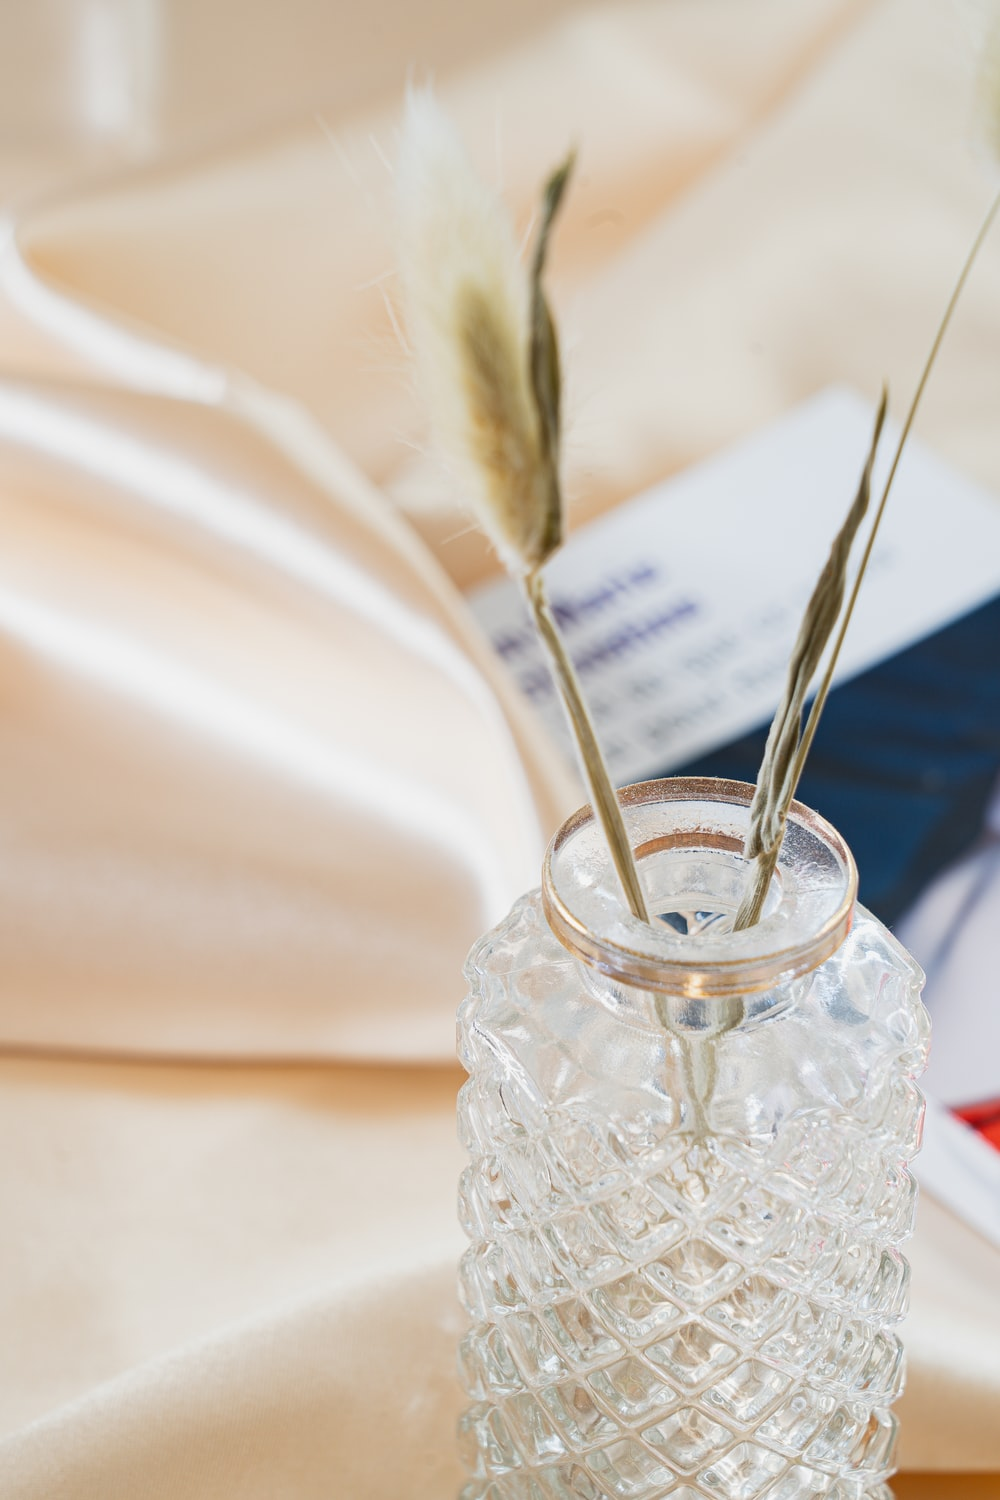 clear glass jar with silver spoon